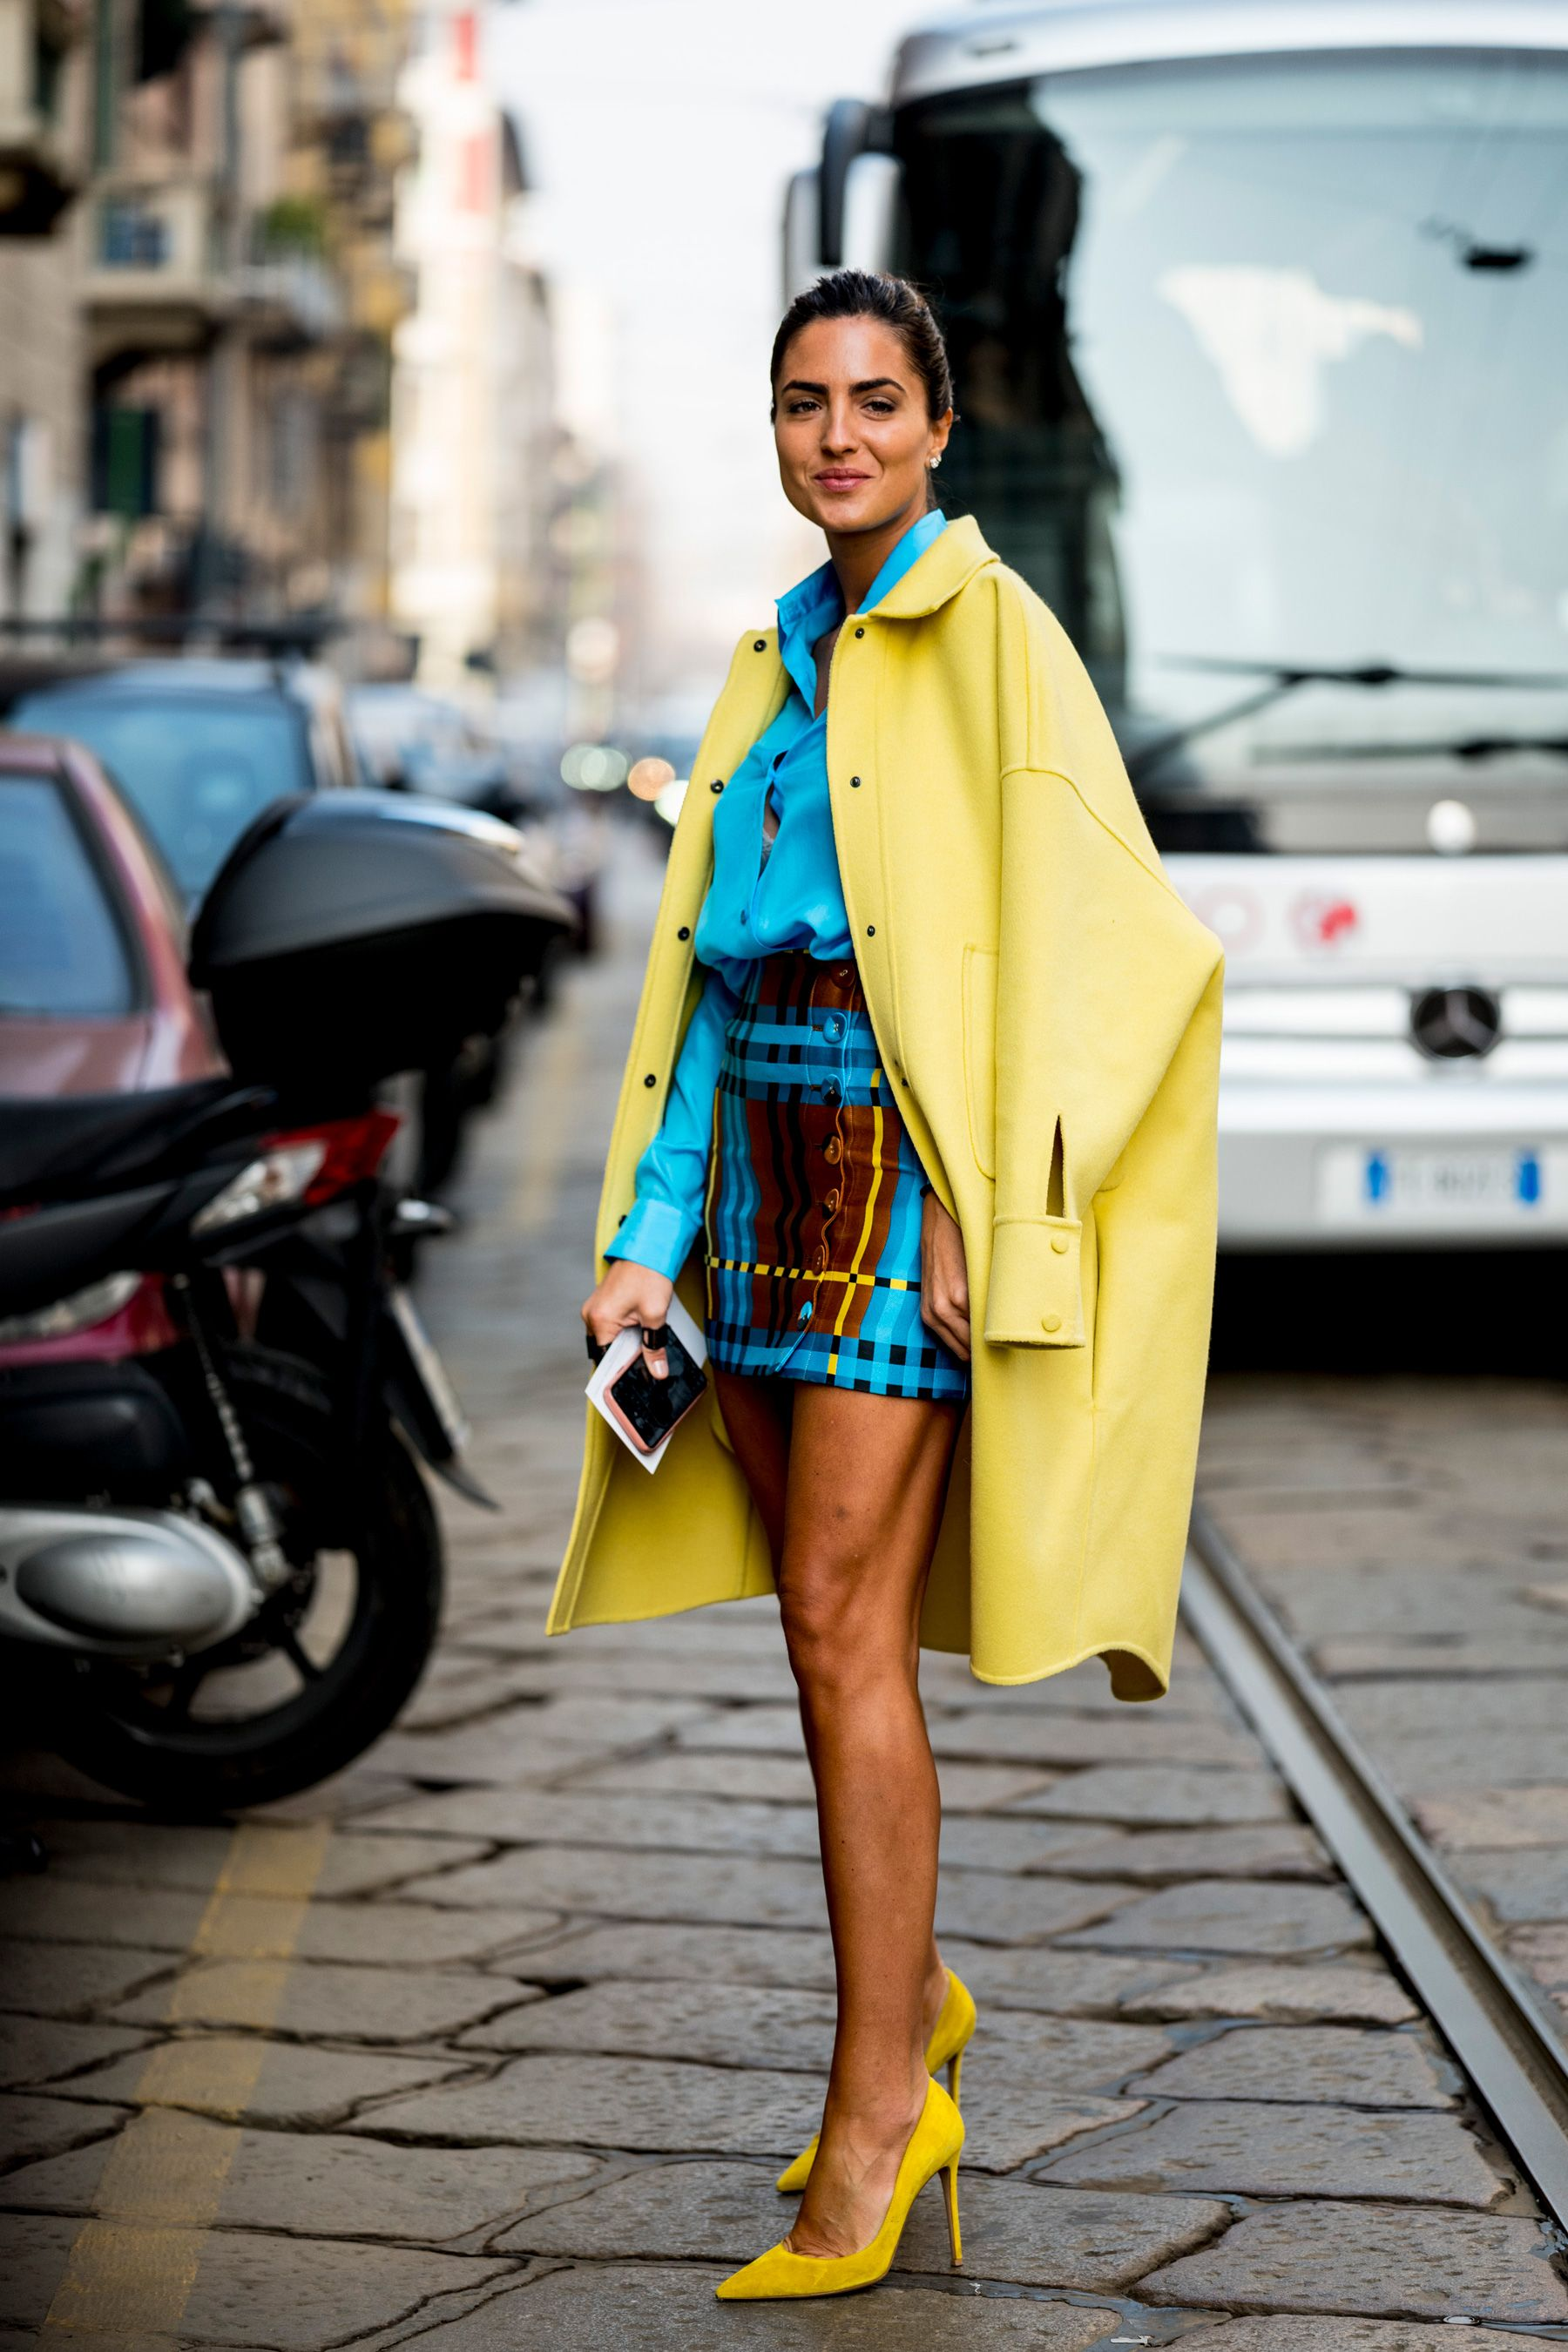 Milan Fashion Week Street Style Fall 2019 Day 1 | F A L L ...